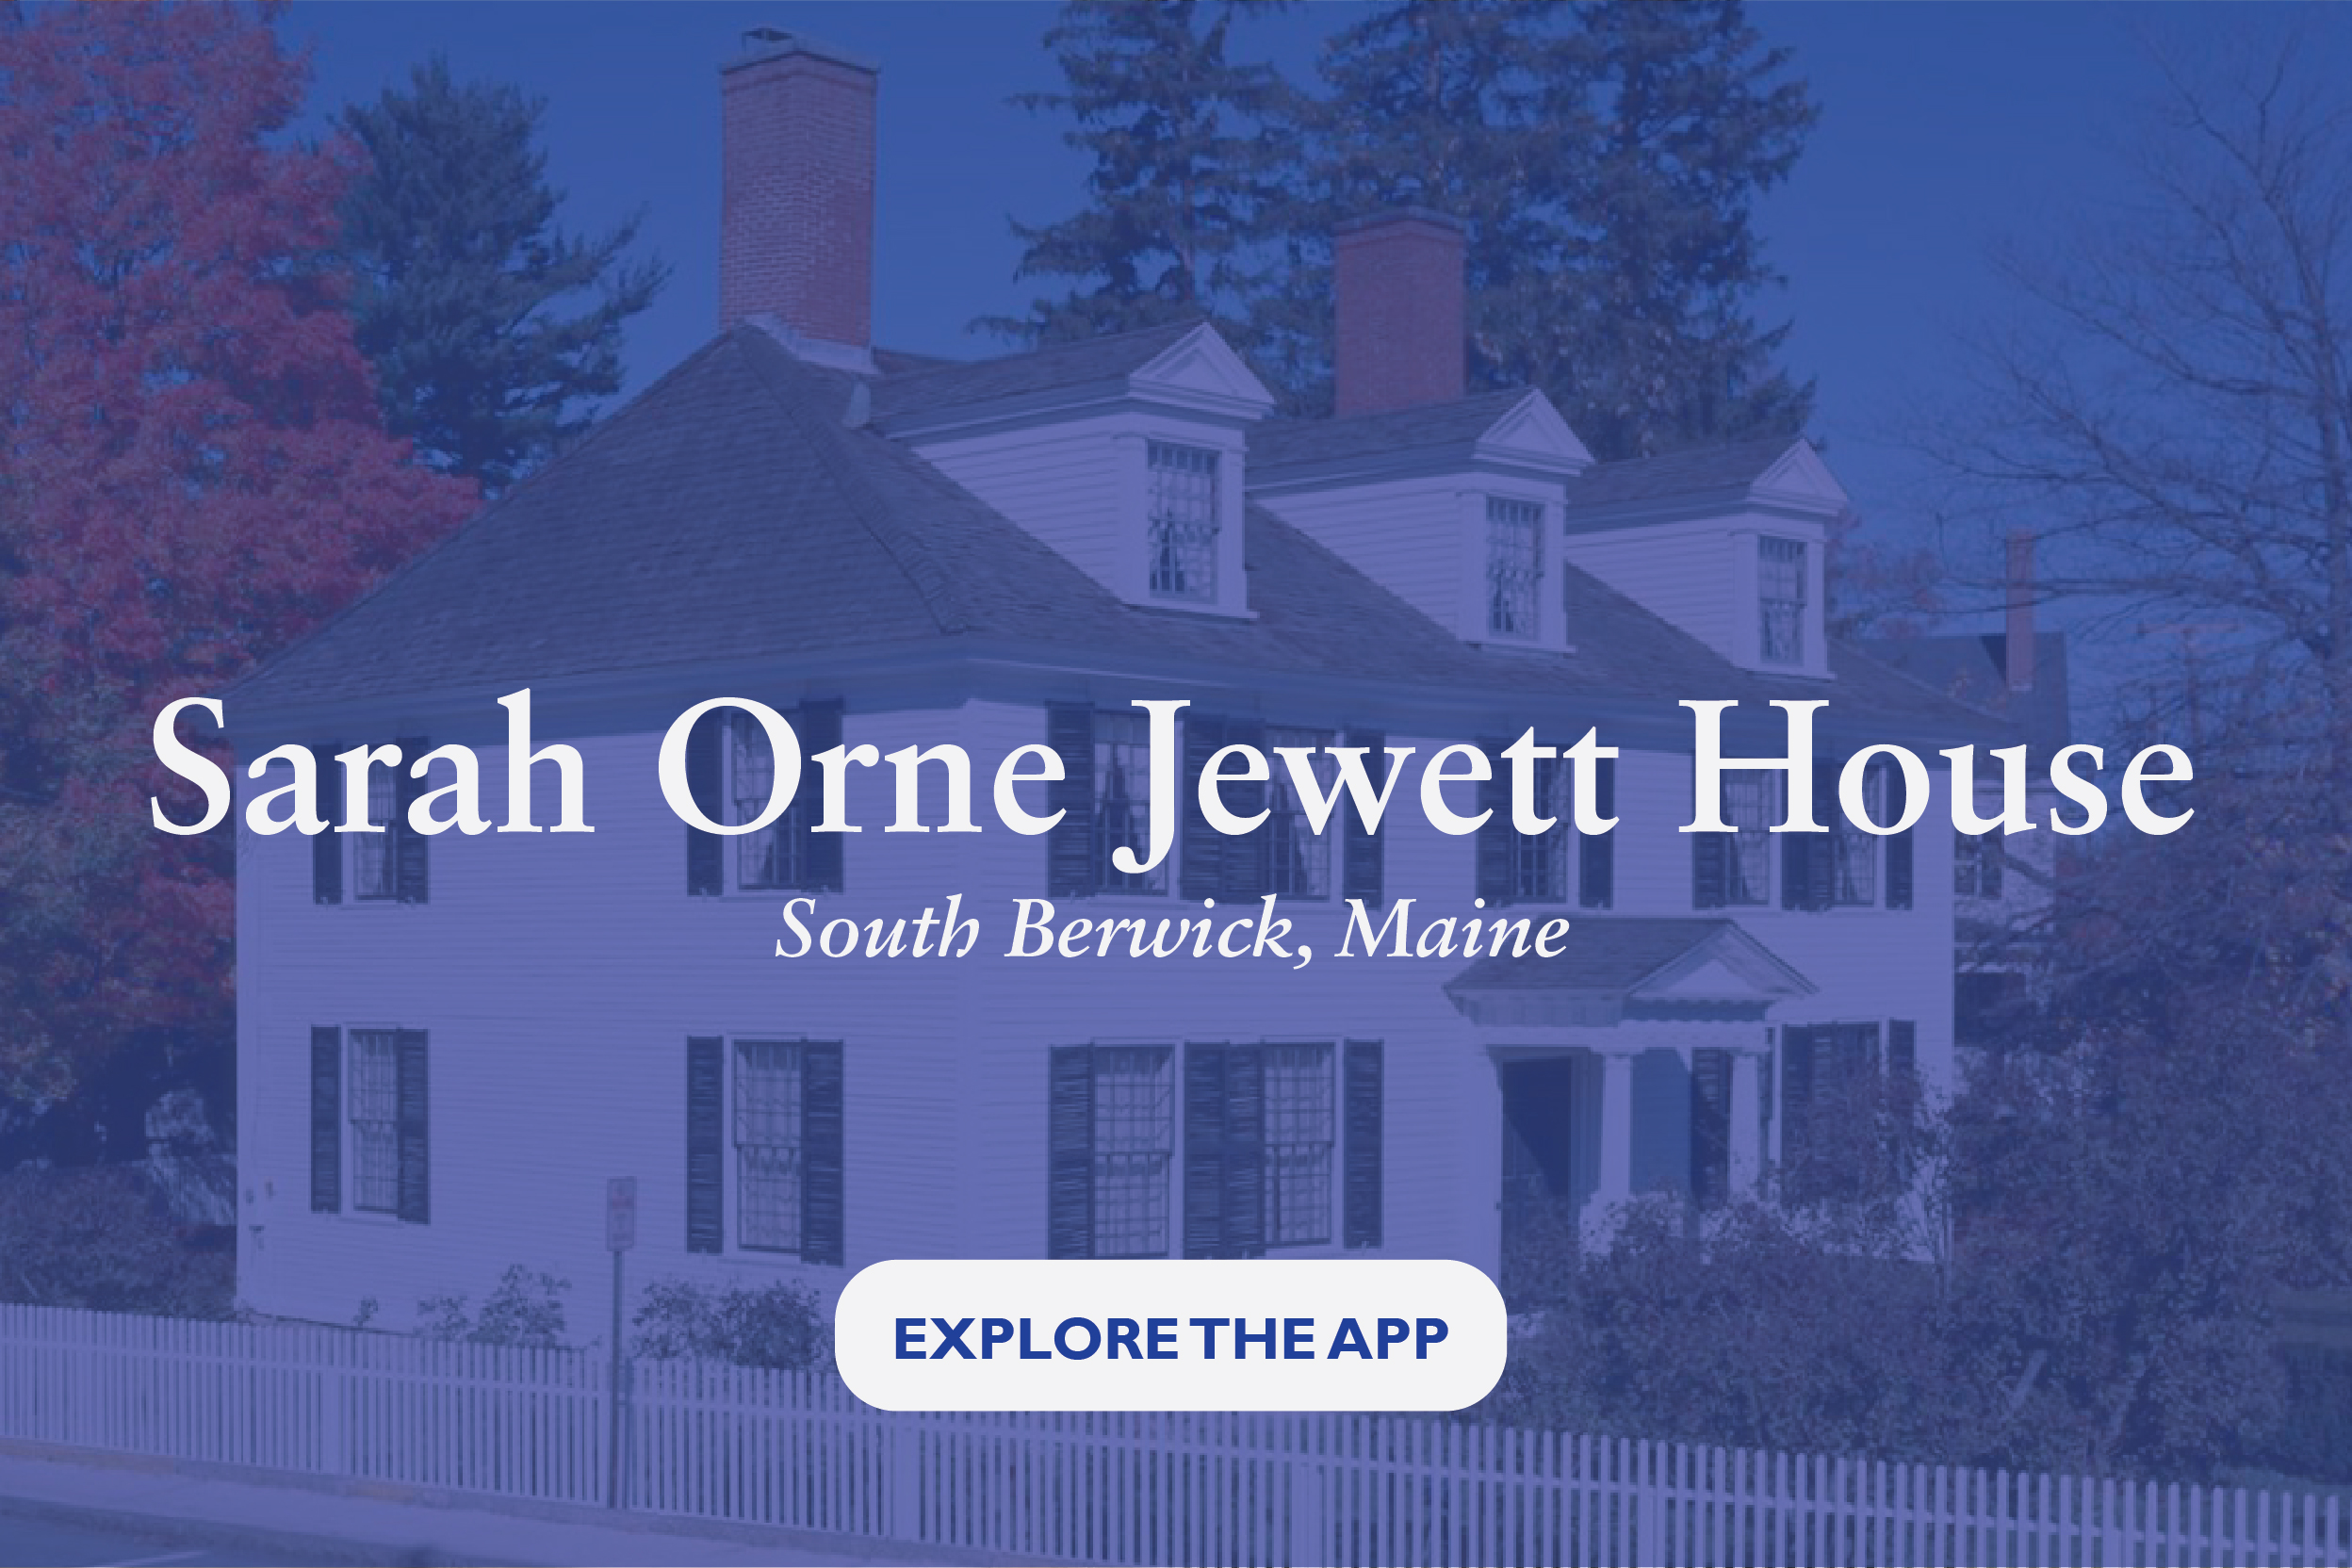 "Exterior of Sarah Orne Jewett House with the text ""Sarah Orne Jewett House, South Berwick, Maine, Explore the app"""